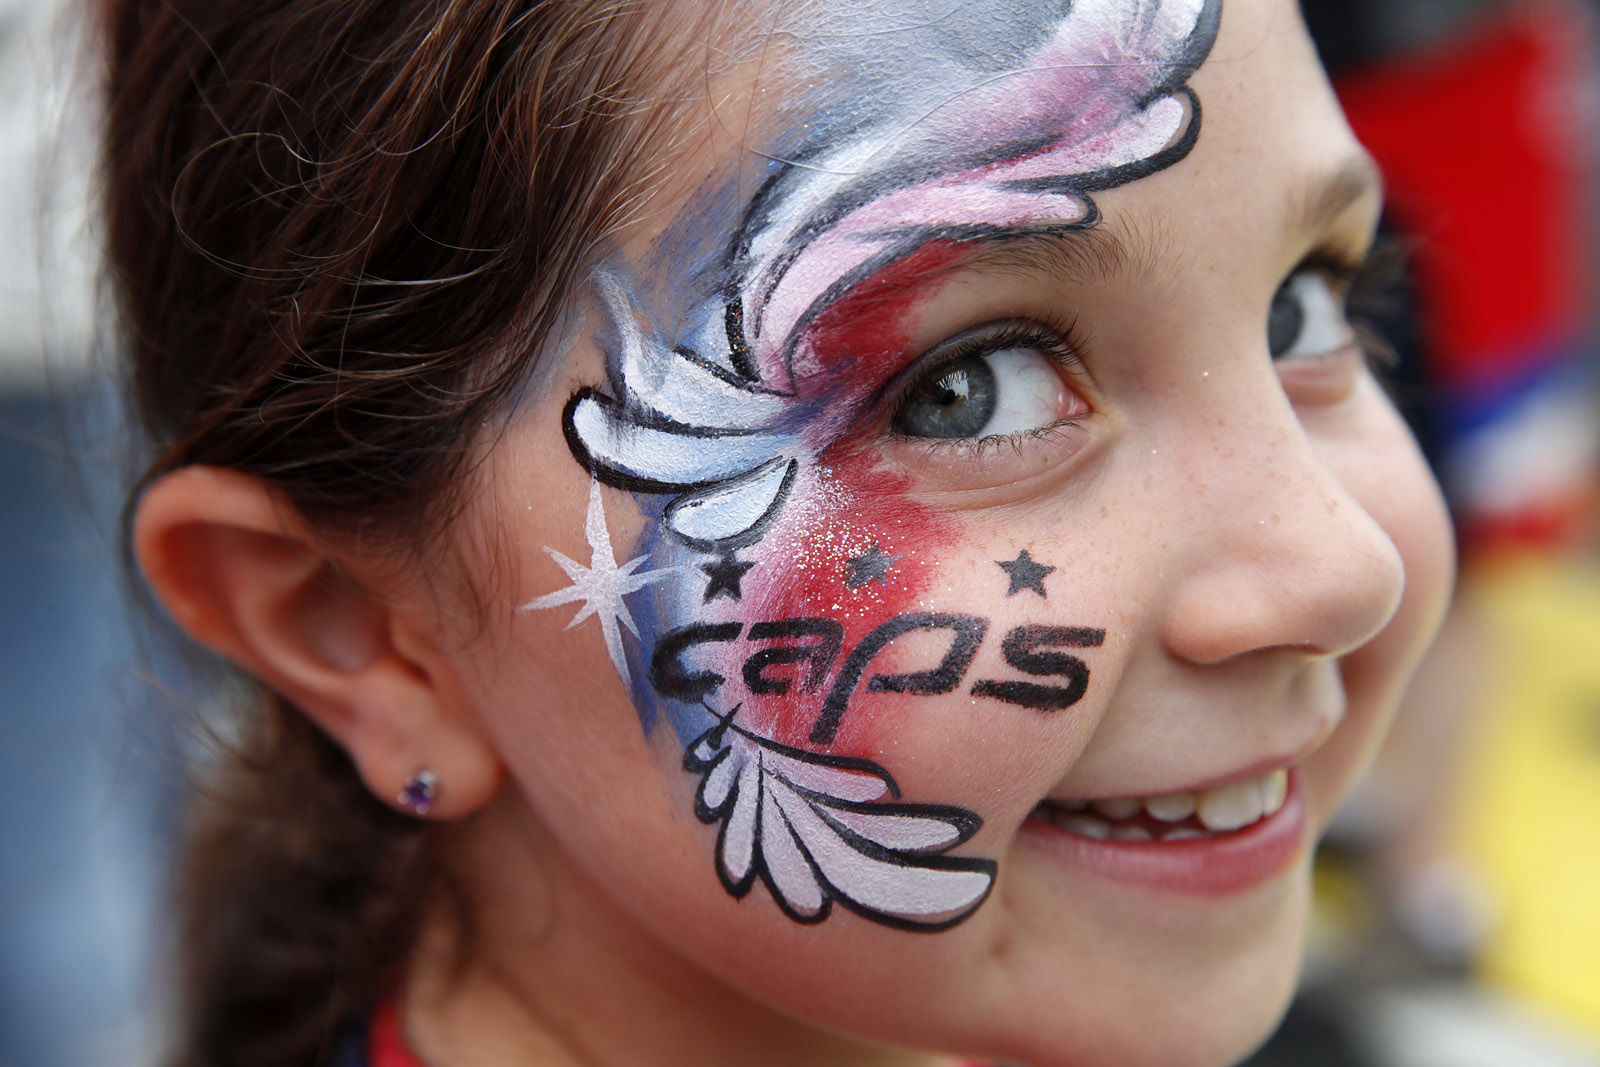 Sarah Charapp, 8, of Potomac, Md., shows off her painted face in support of the Washington Capitals, as fans gather to watch Game 3 of the NHL hockey Stanley Cup Final between the Capitals and the Vegas Golden Knights, Saturday, June 2, 2018, in Washington. (AP Photo/Jacquelyn Martin)